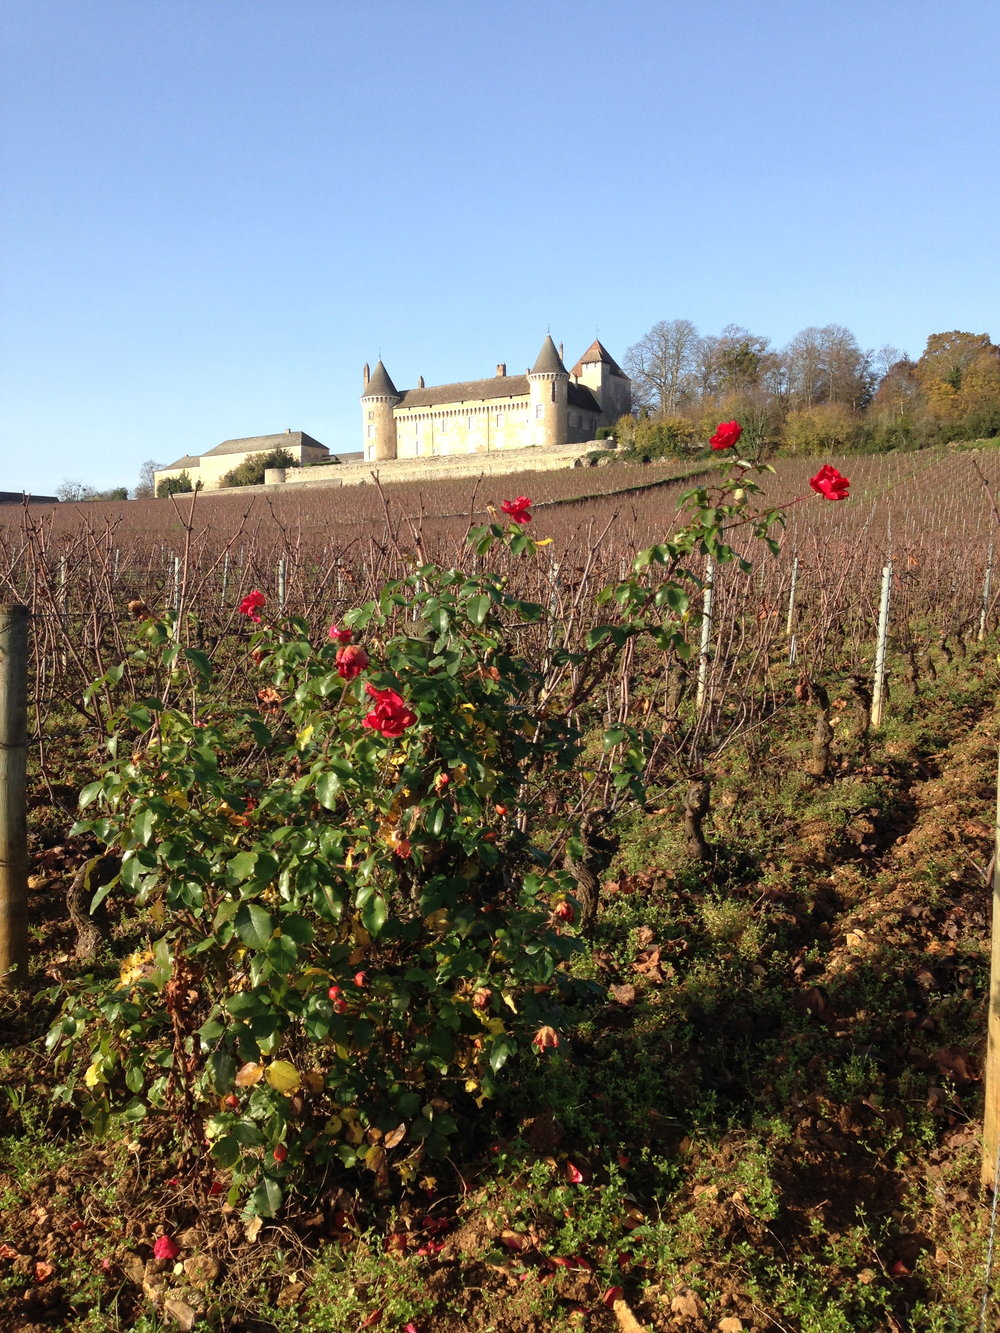 Burgundian vines in the autumn